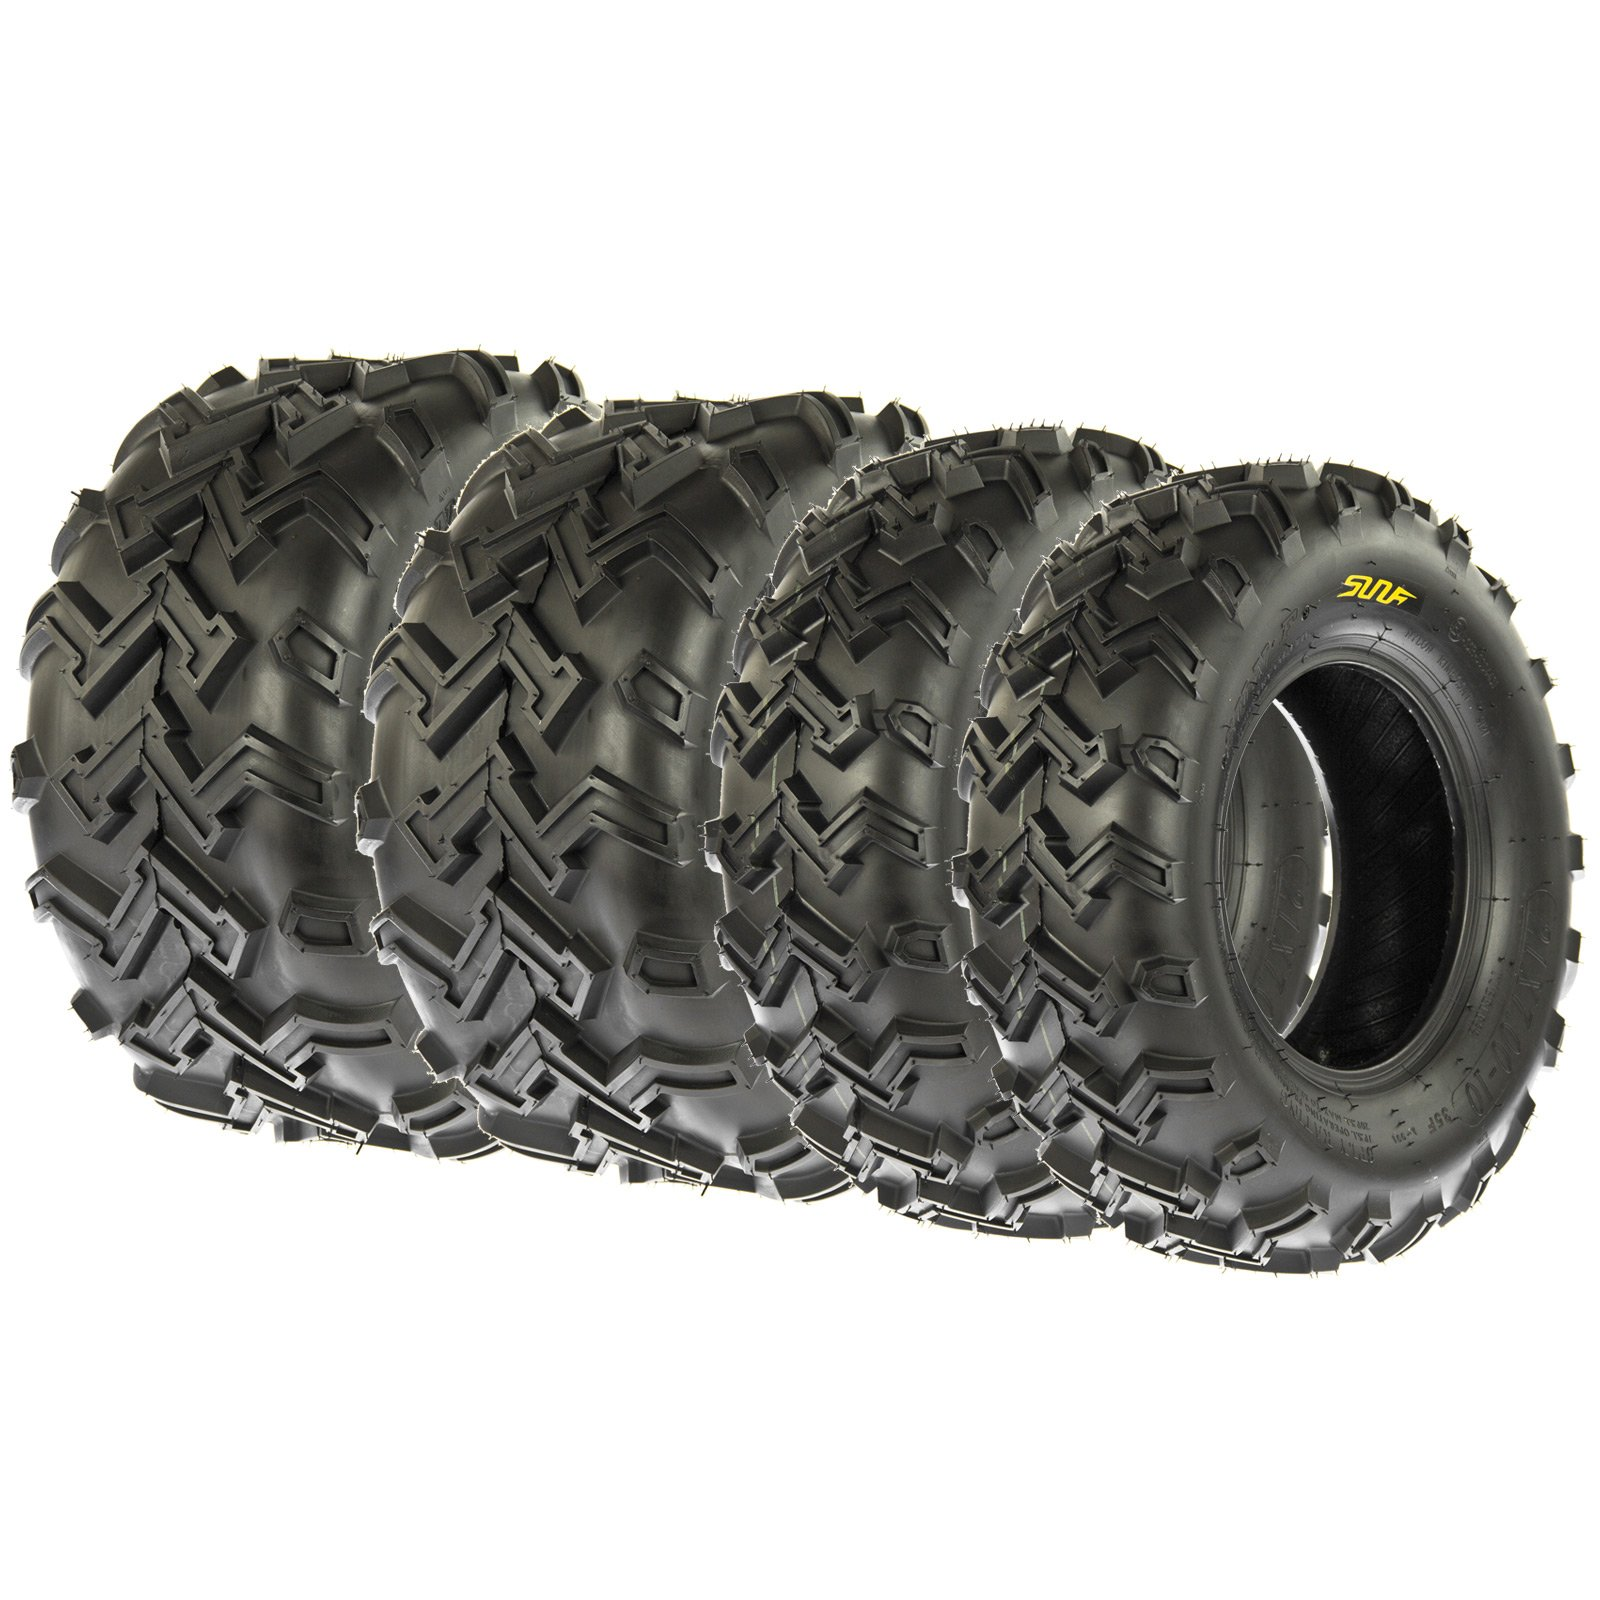 SunF Set of 4 A001 Off Road ATV Sport Tires Front & Rear, 4 Ply (24x8-12 & 24x11-10)